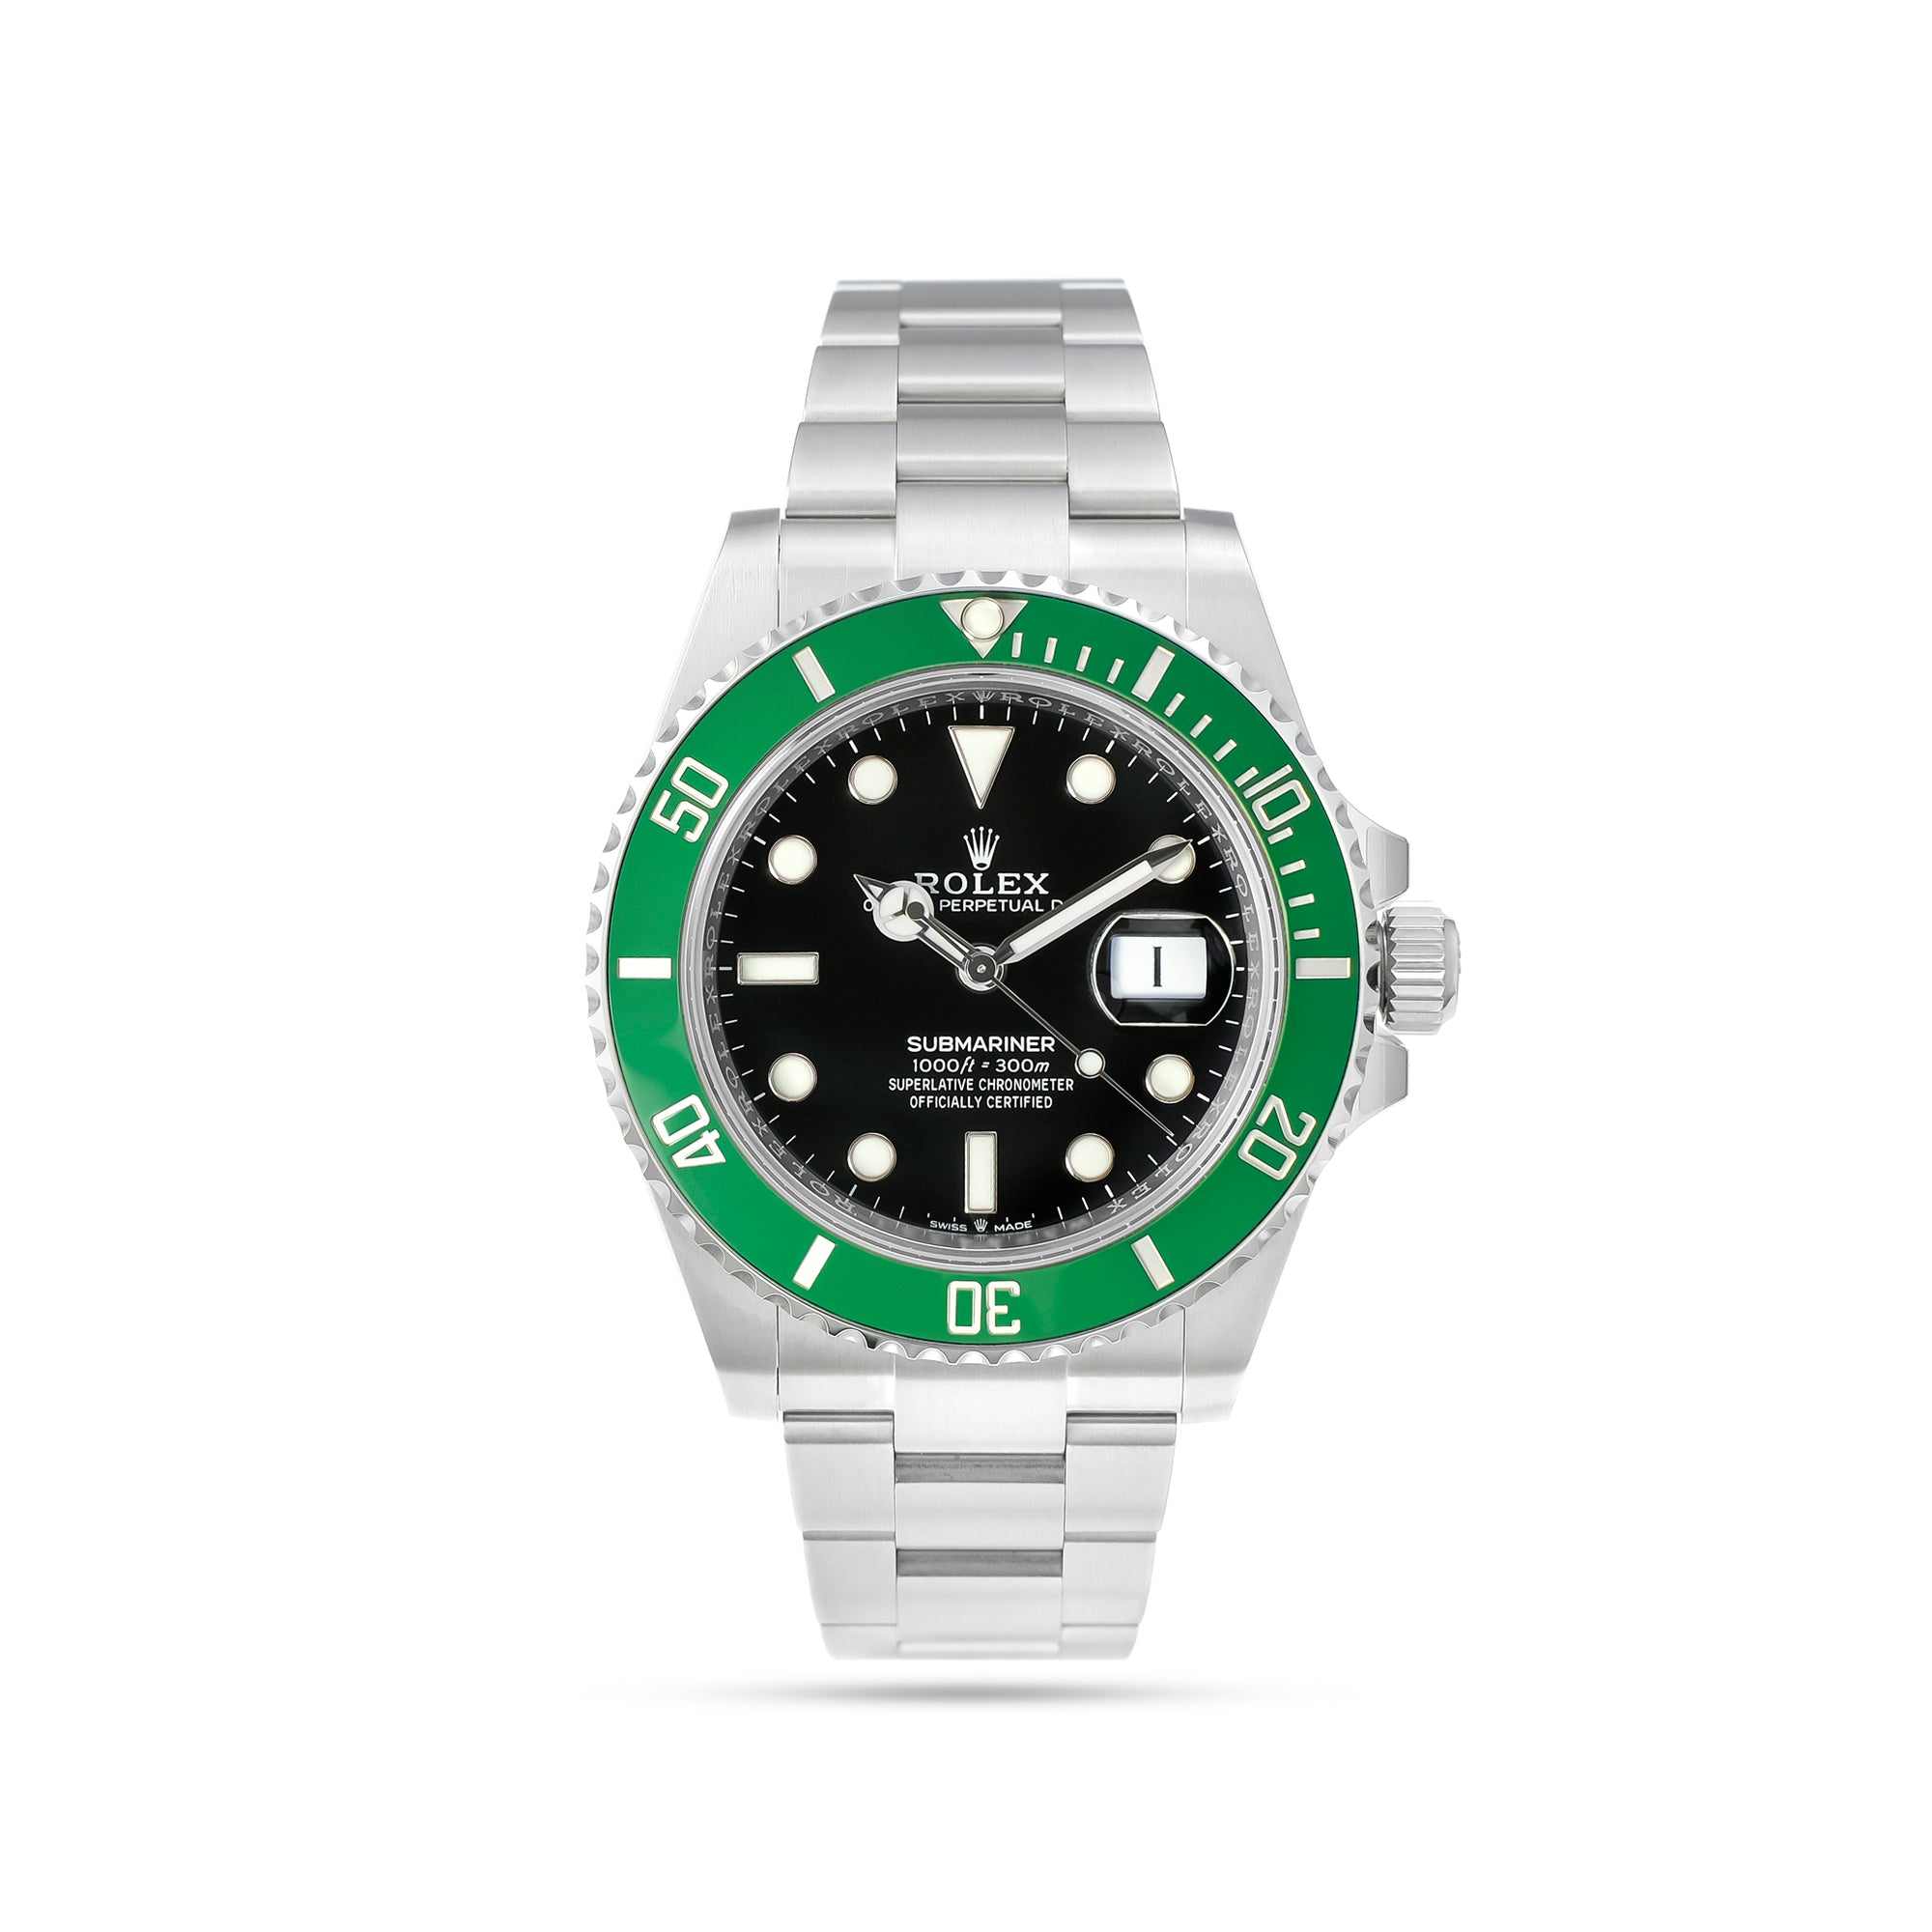 Rolex Submariner 41mm 126610LV